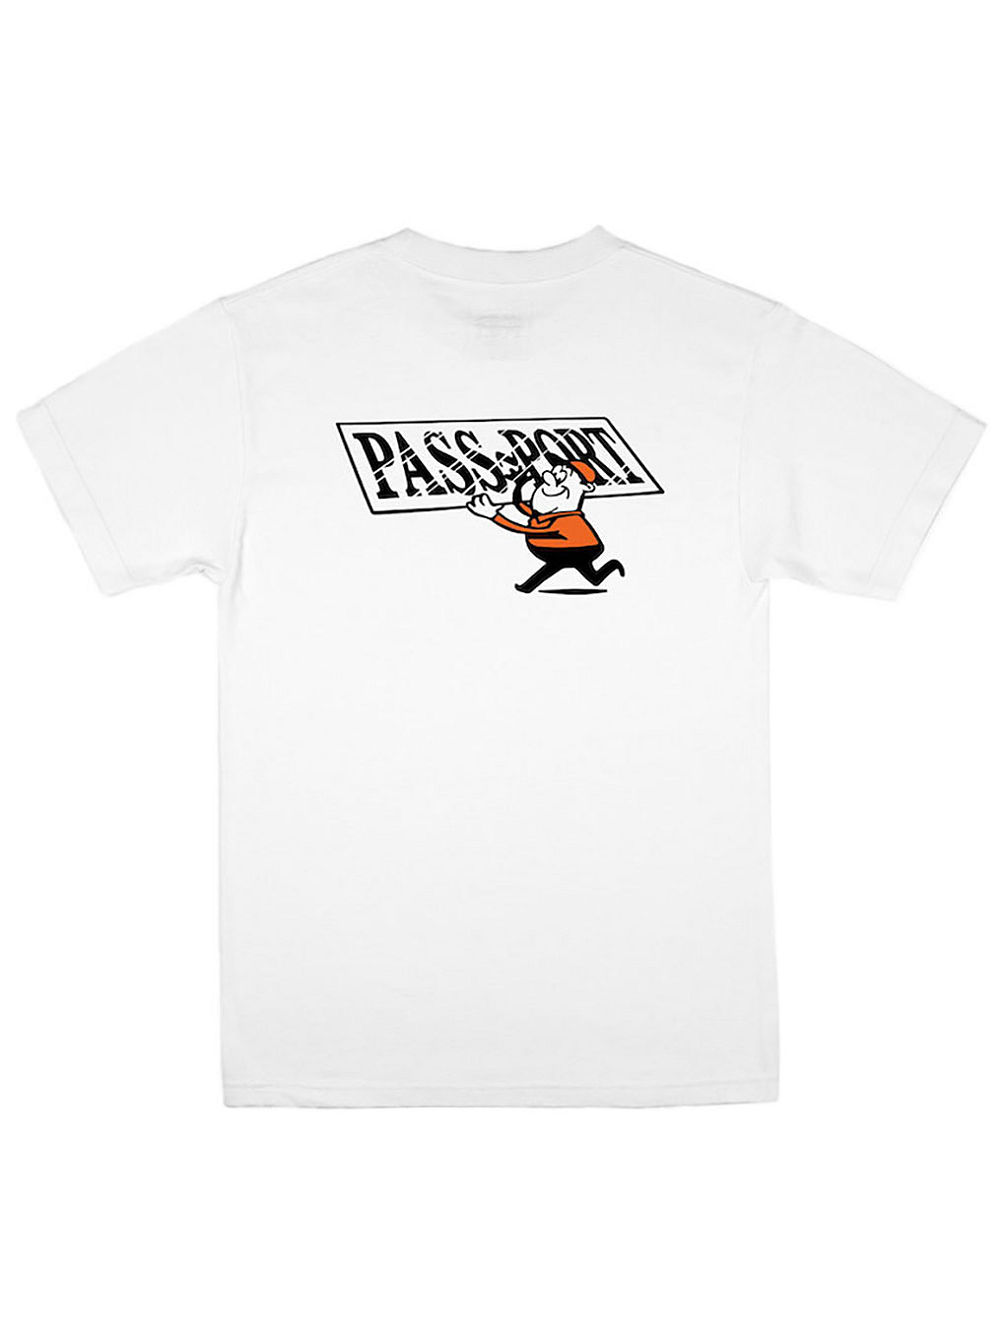 Mirror Man Pocket T-shirt